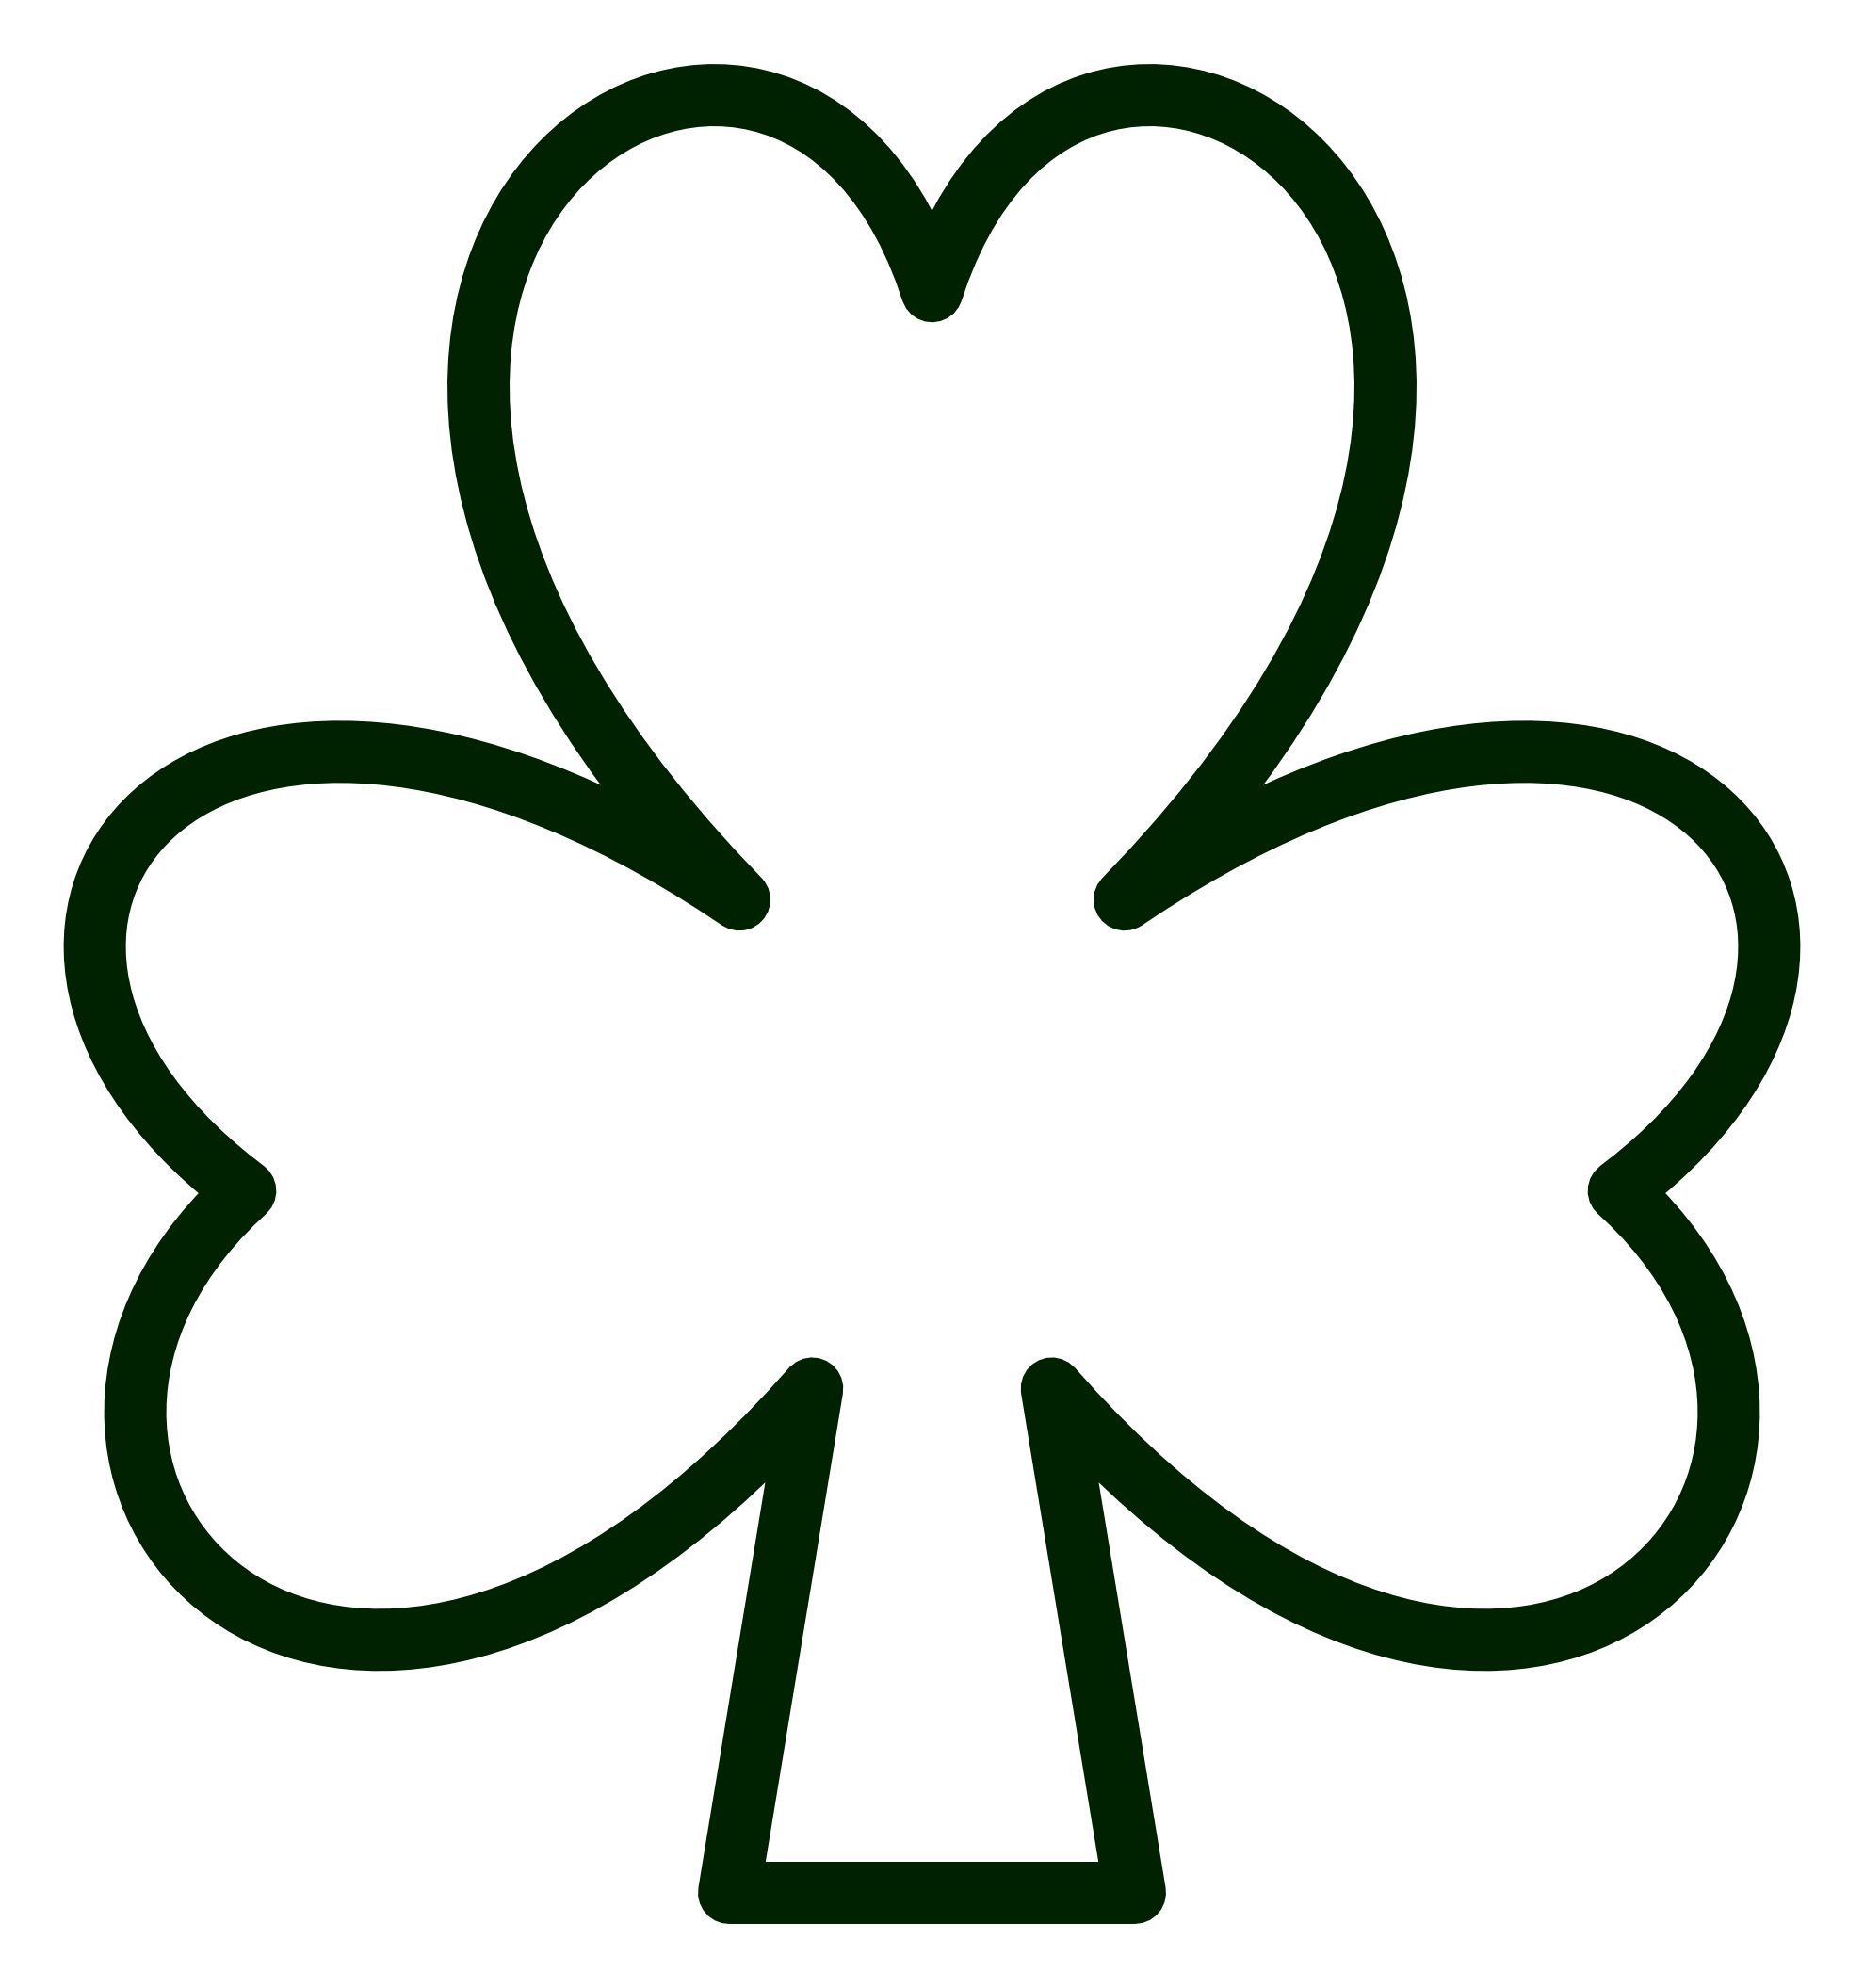 Free Shamrocks Clipart, Download Free Clip Art, Free Clip.